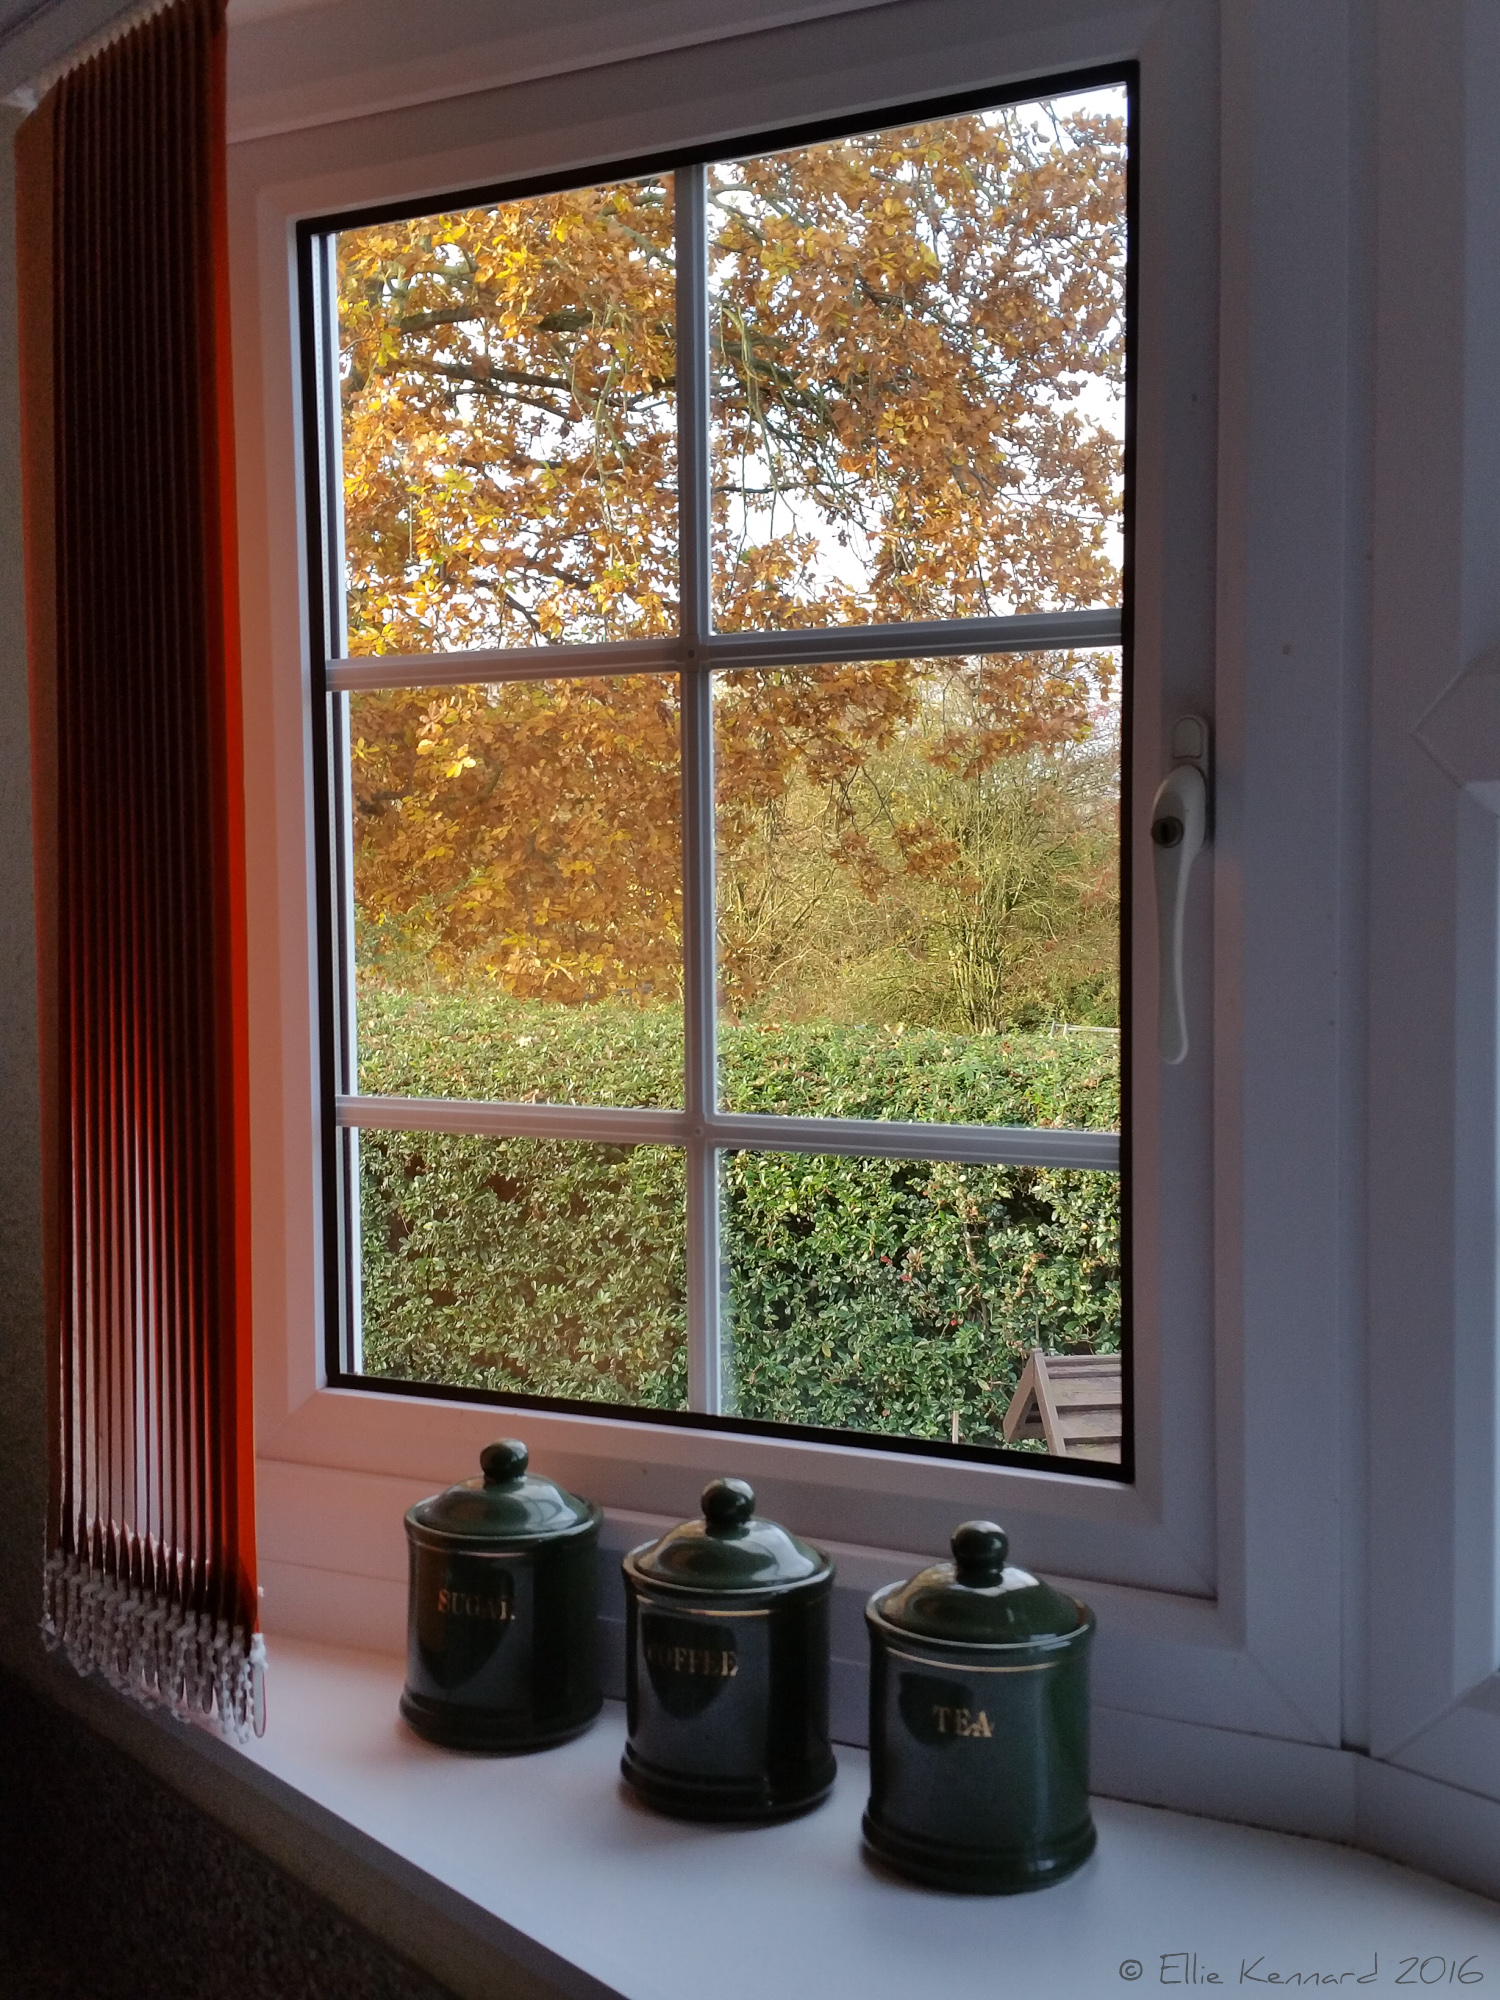 Cottage autumn window - Ellie Kennard 2016